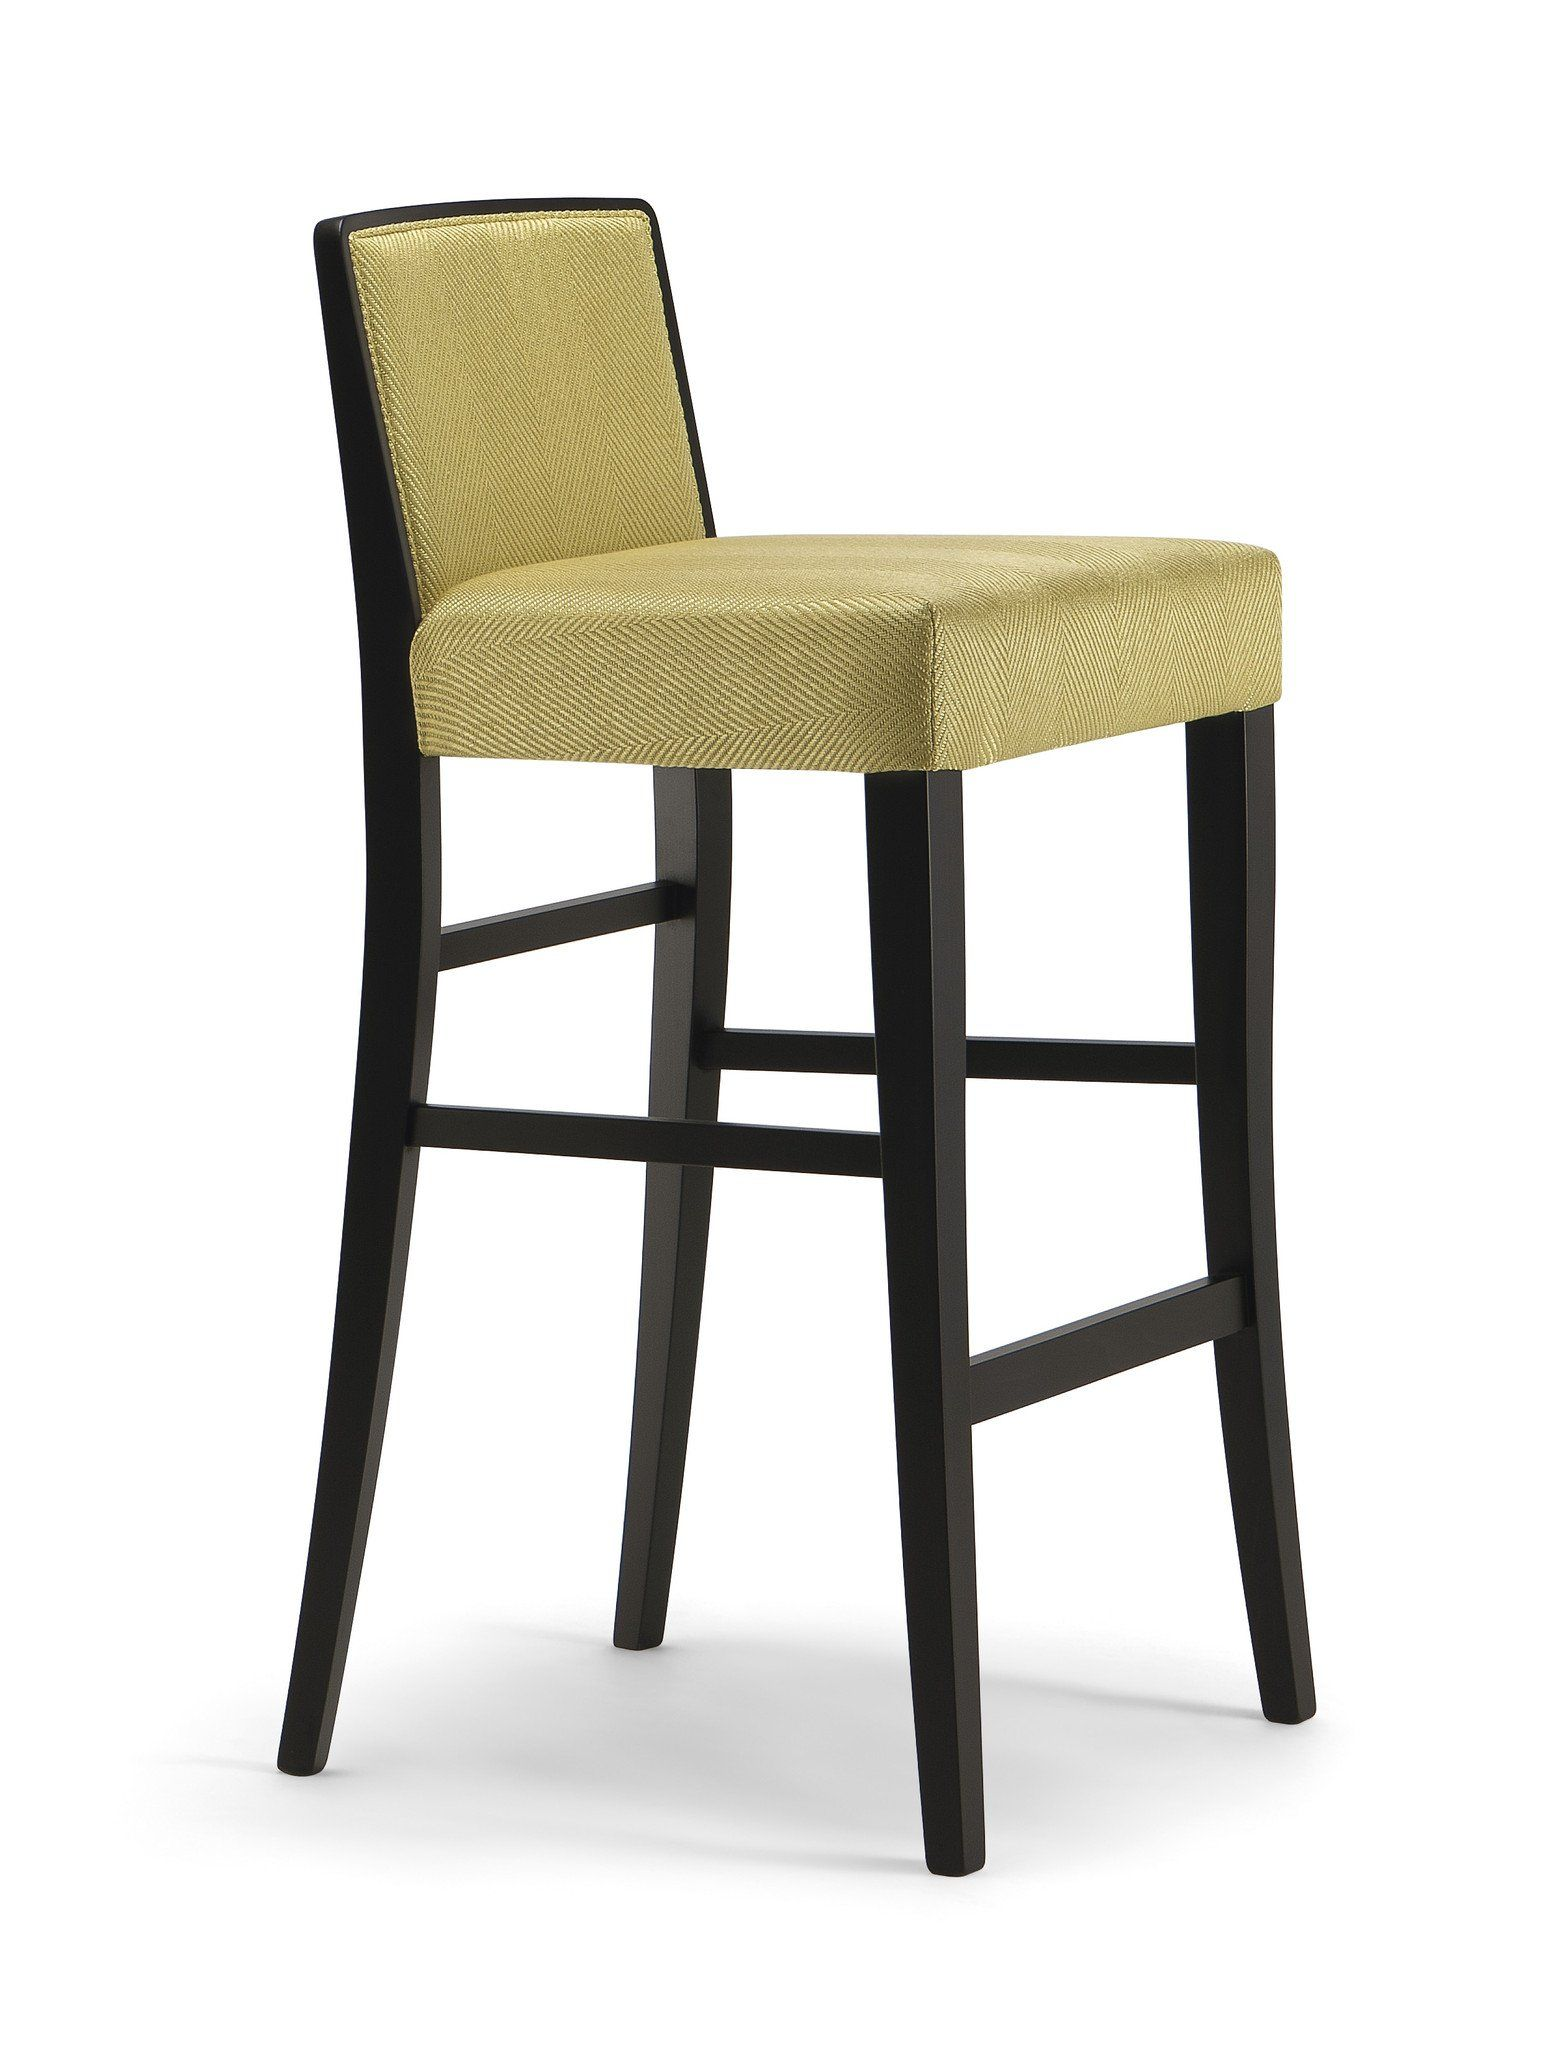 Cannes High Stool Leather Fabric Footrest And Wood Stain # Muebles Tubulares Beta